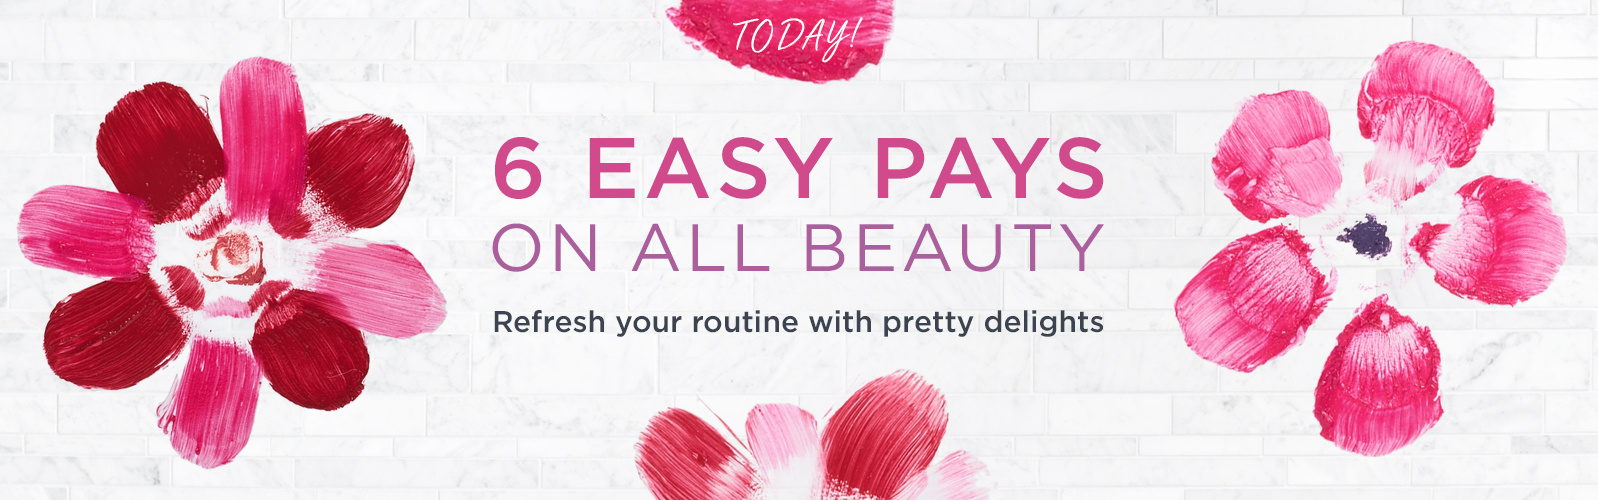 Today! 6 Easy Pays on ALL Beauty — Refresh your routine with pretty delights